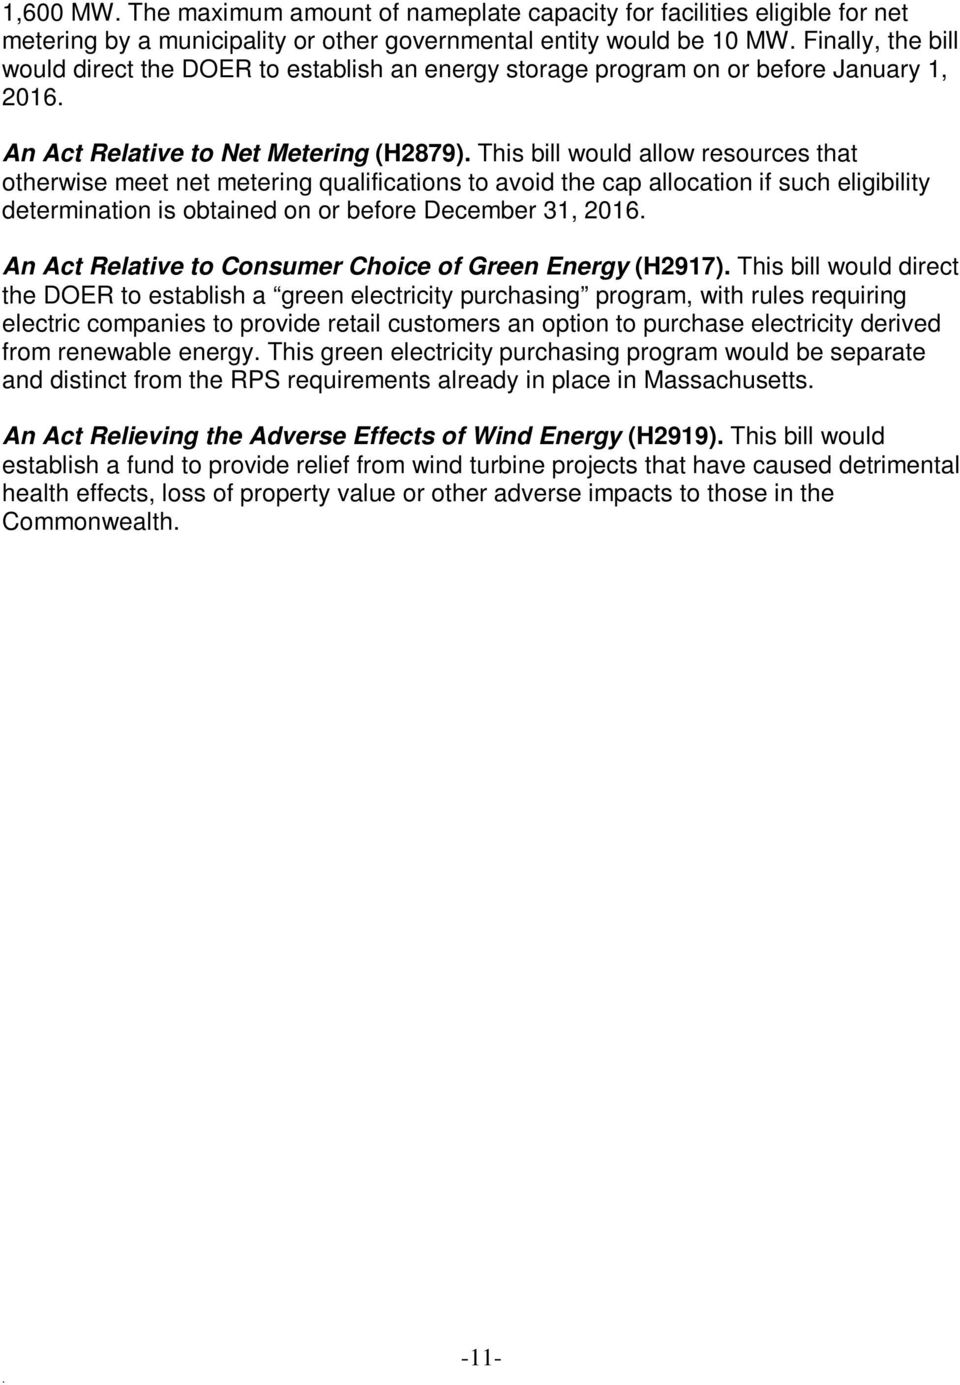 cap allocation if such eligibility determination is obtained on or before December 31, 2016 An Act Relative to Consumer Choice of Green Energy (H2917) This bill would direct the DOER to establish a